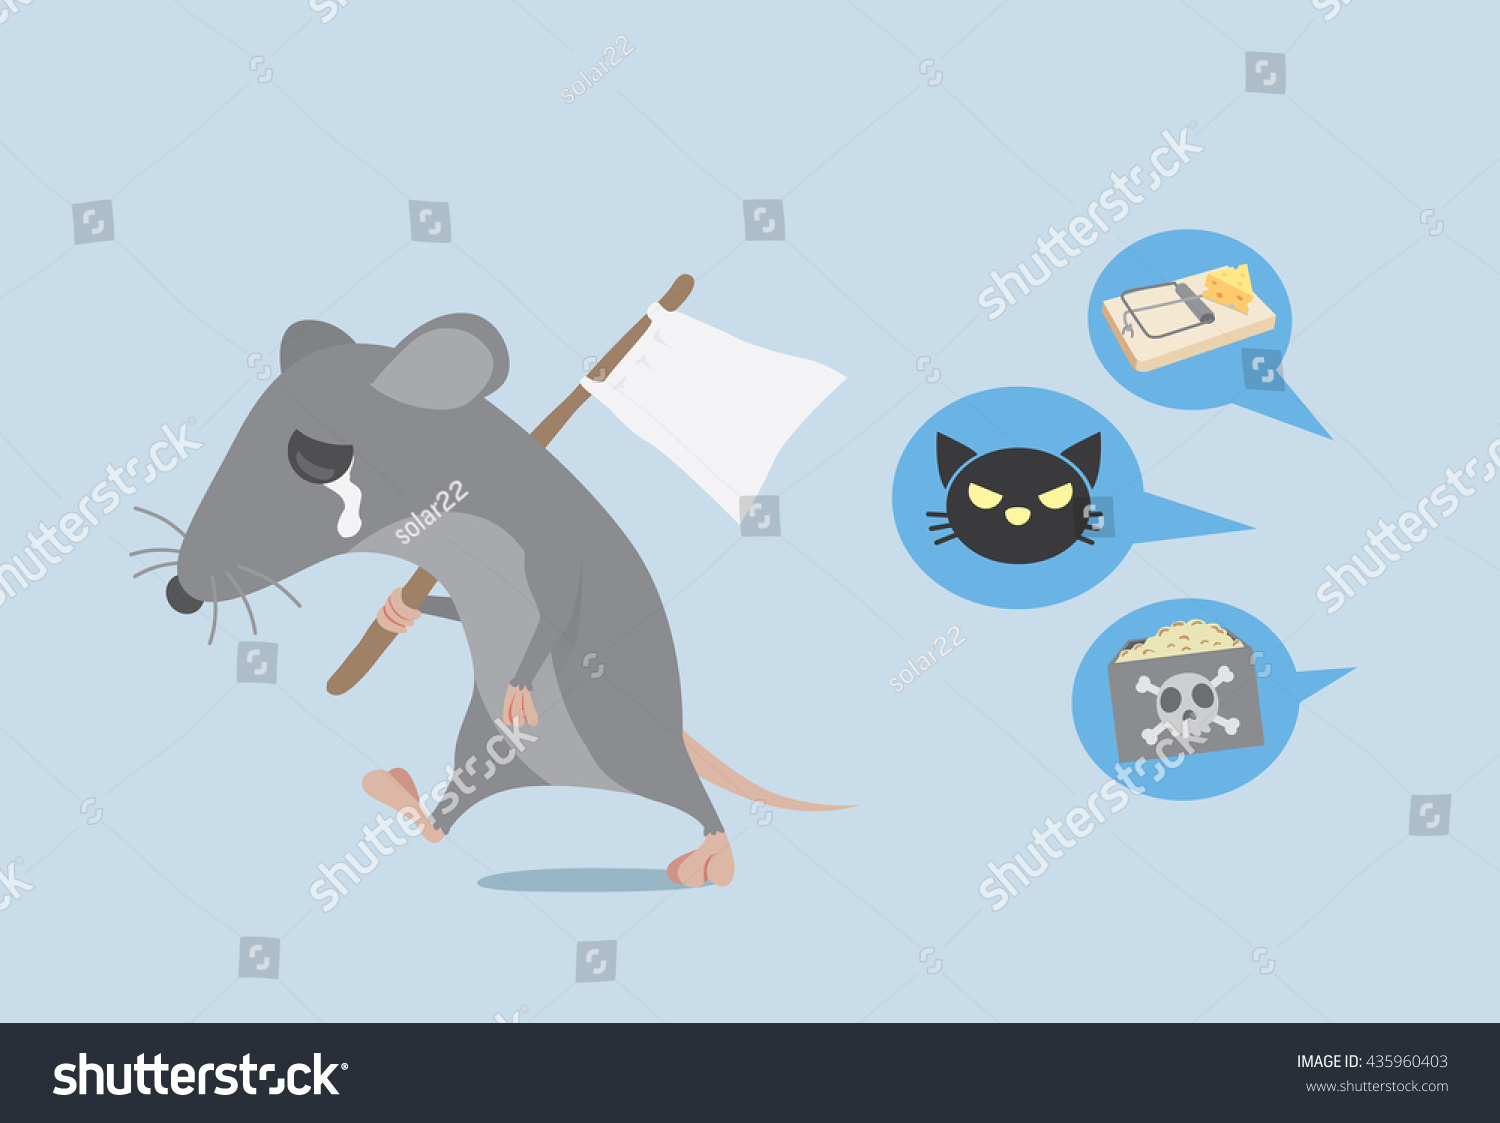 rat raise white flag give way stock vector shutterstock rat raise a white flag for give up way get rid of rat by home